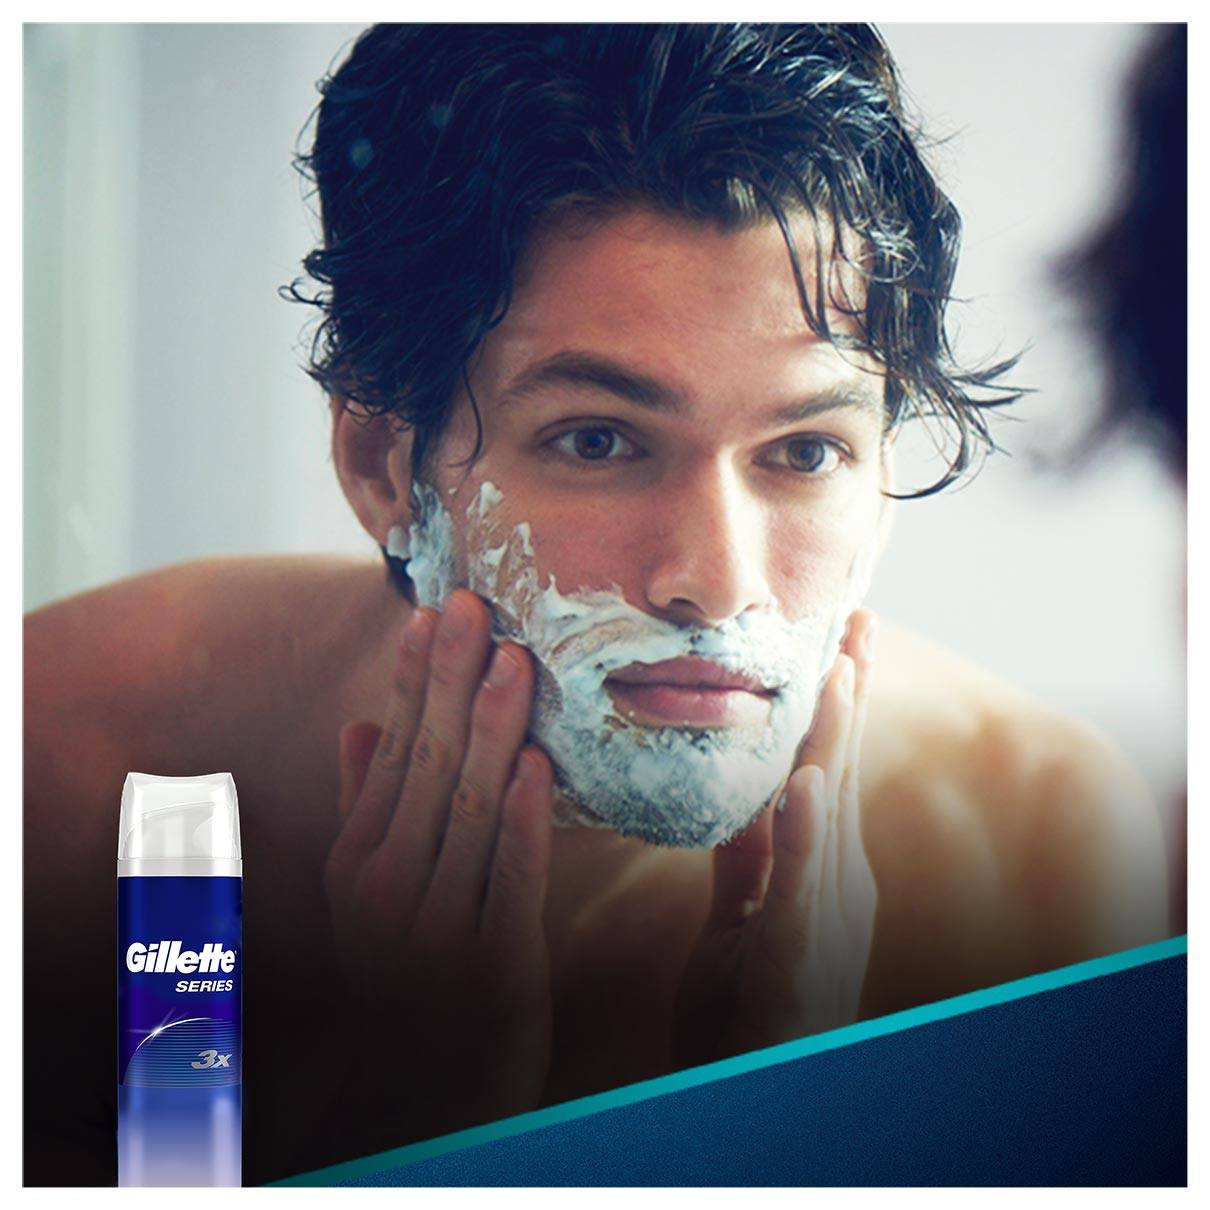 Series Protection Shave Gel